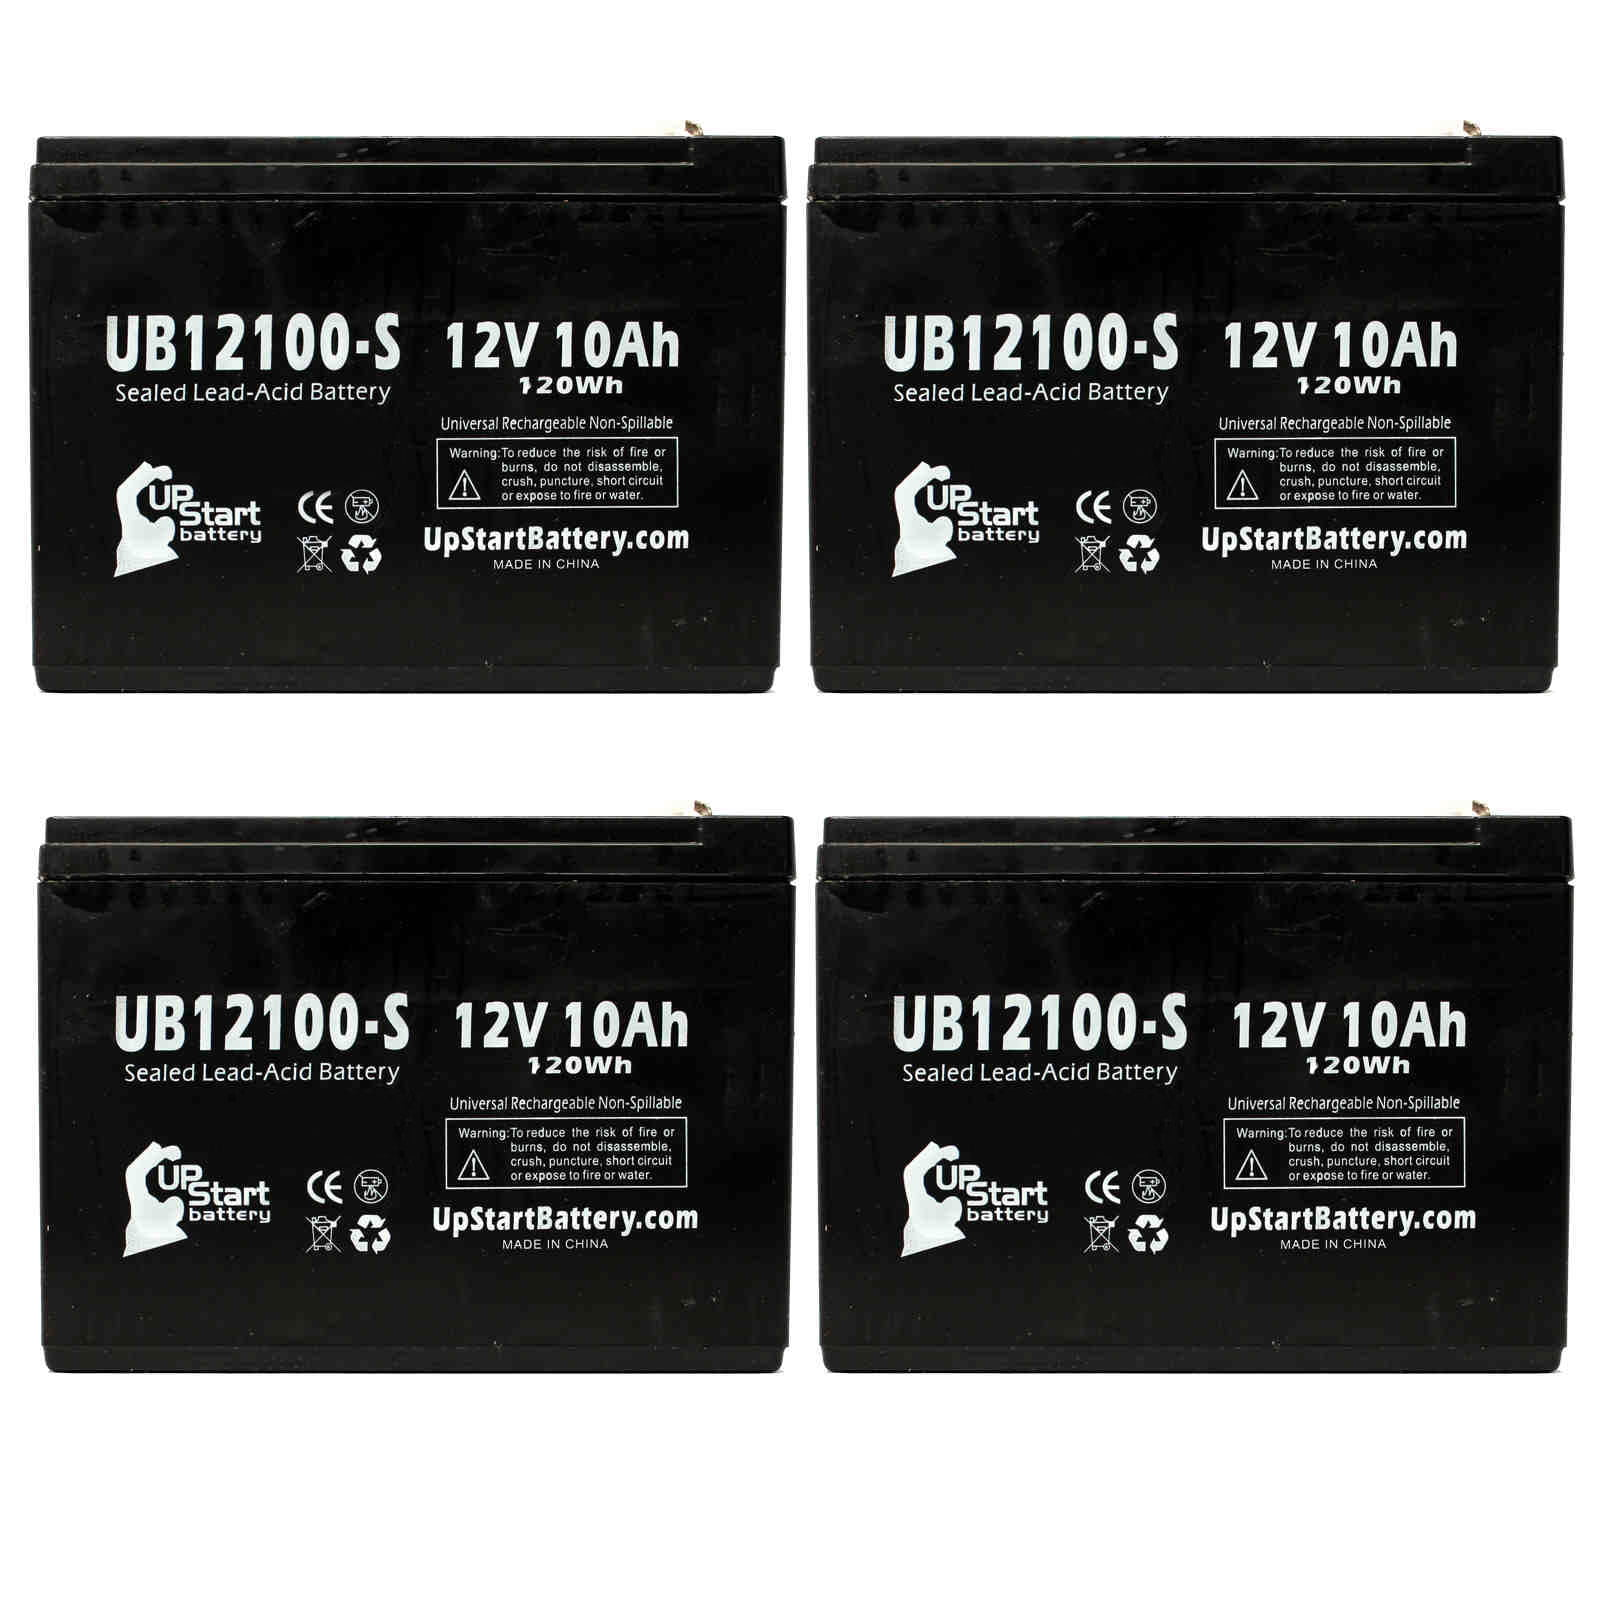 3 Pack Replacement for B /& B Battery BP10-12 Battery 12V, 10Ah, 10000mAh, F2 Terminal, AGM, SLA Replacement UB12100-S Universal Sealed Lead Acid Battery